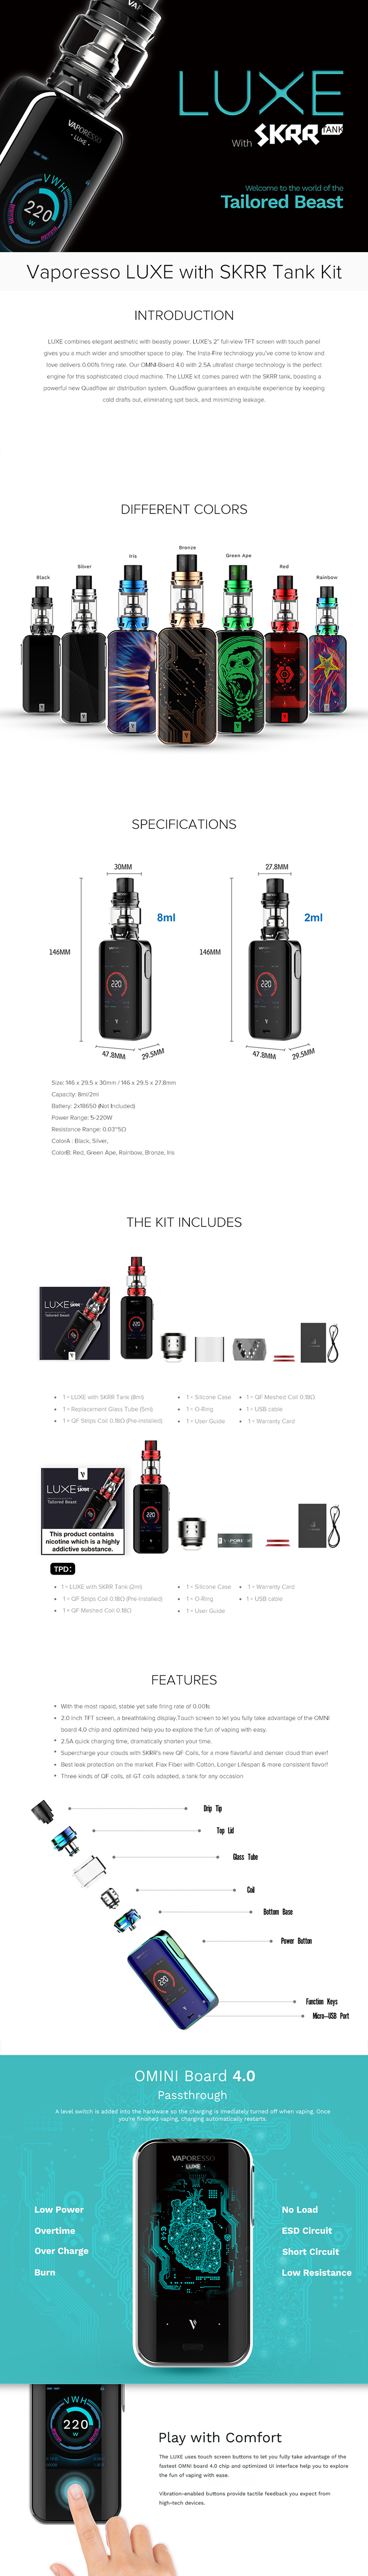 aramax vape pen instructions